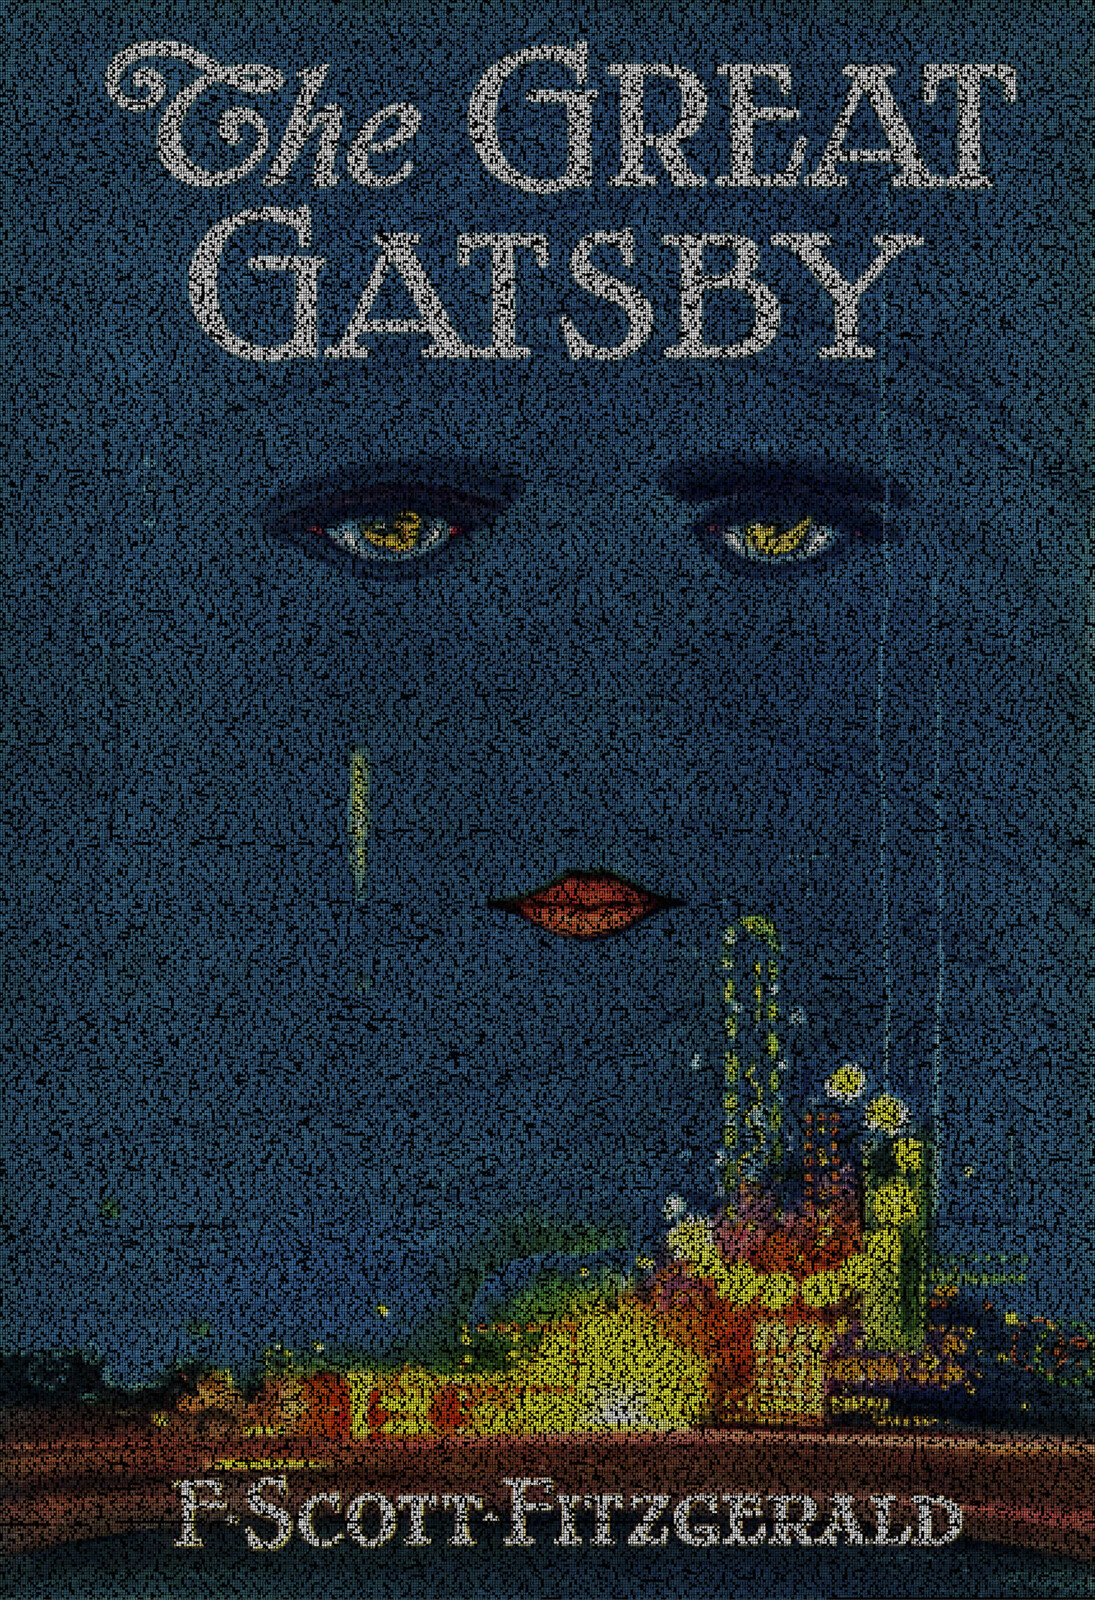 The entire text of The Great Gatsby.